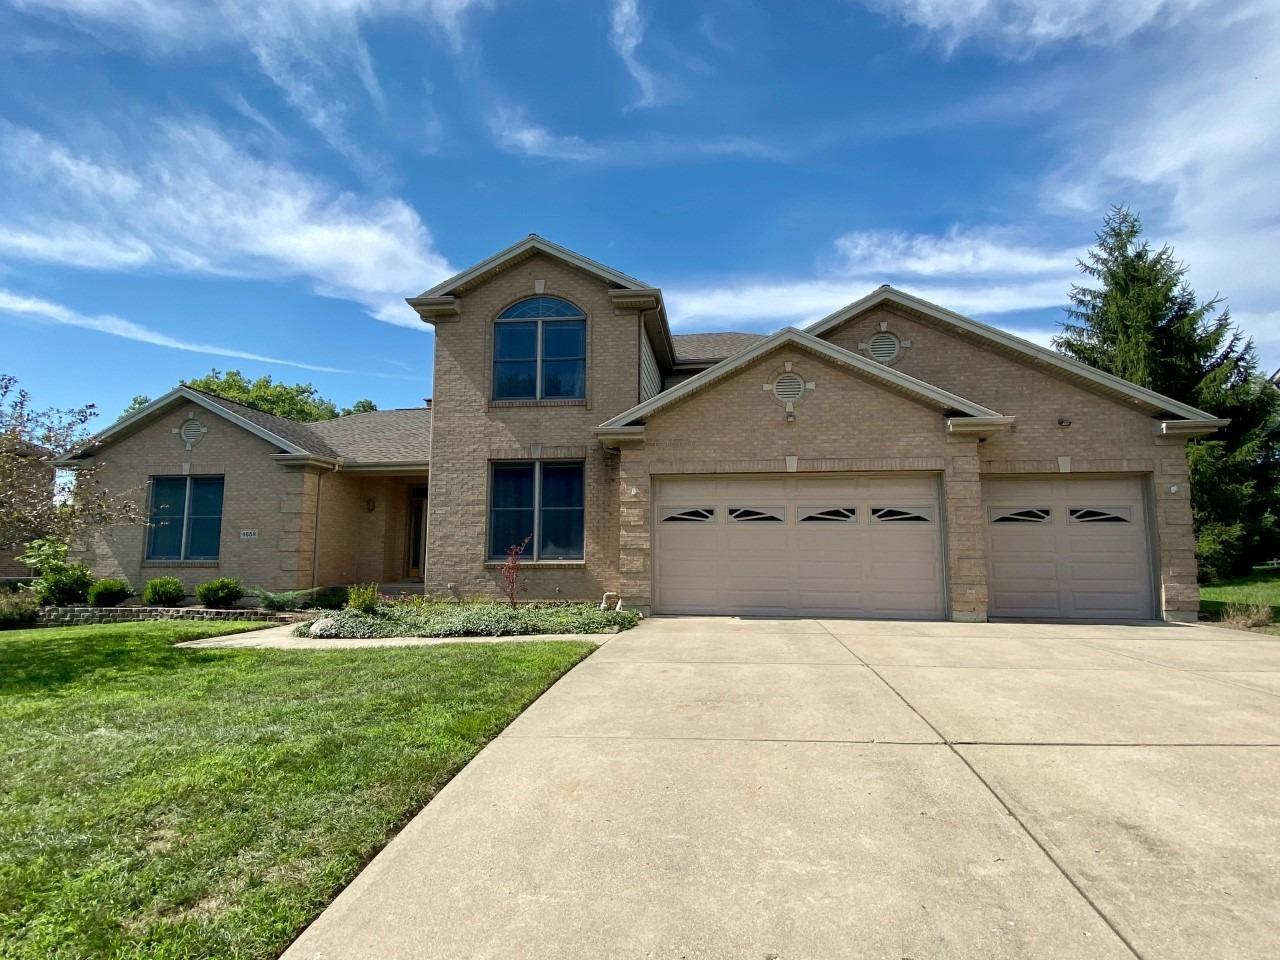 Property for sale at 4658 Mesa Place, Liberty Twp,  Ohio 45011